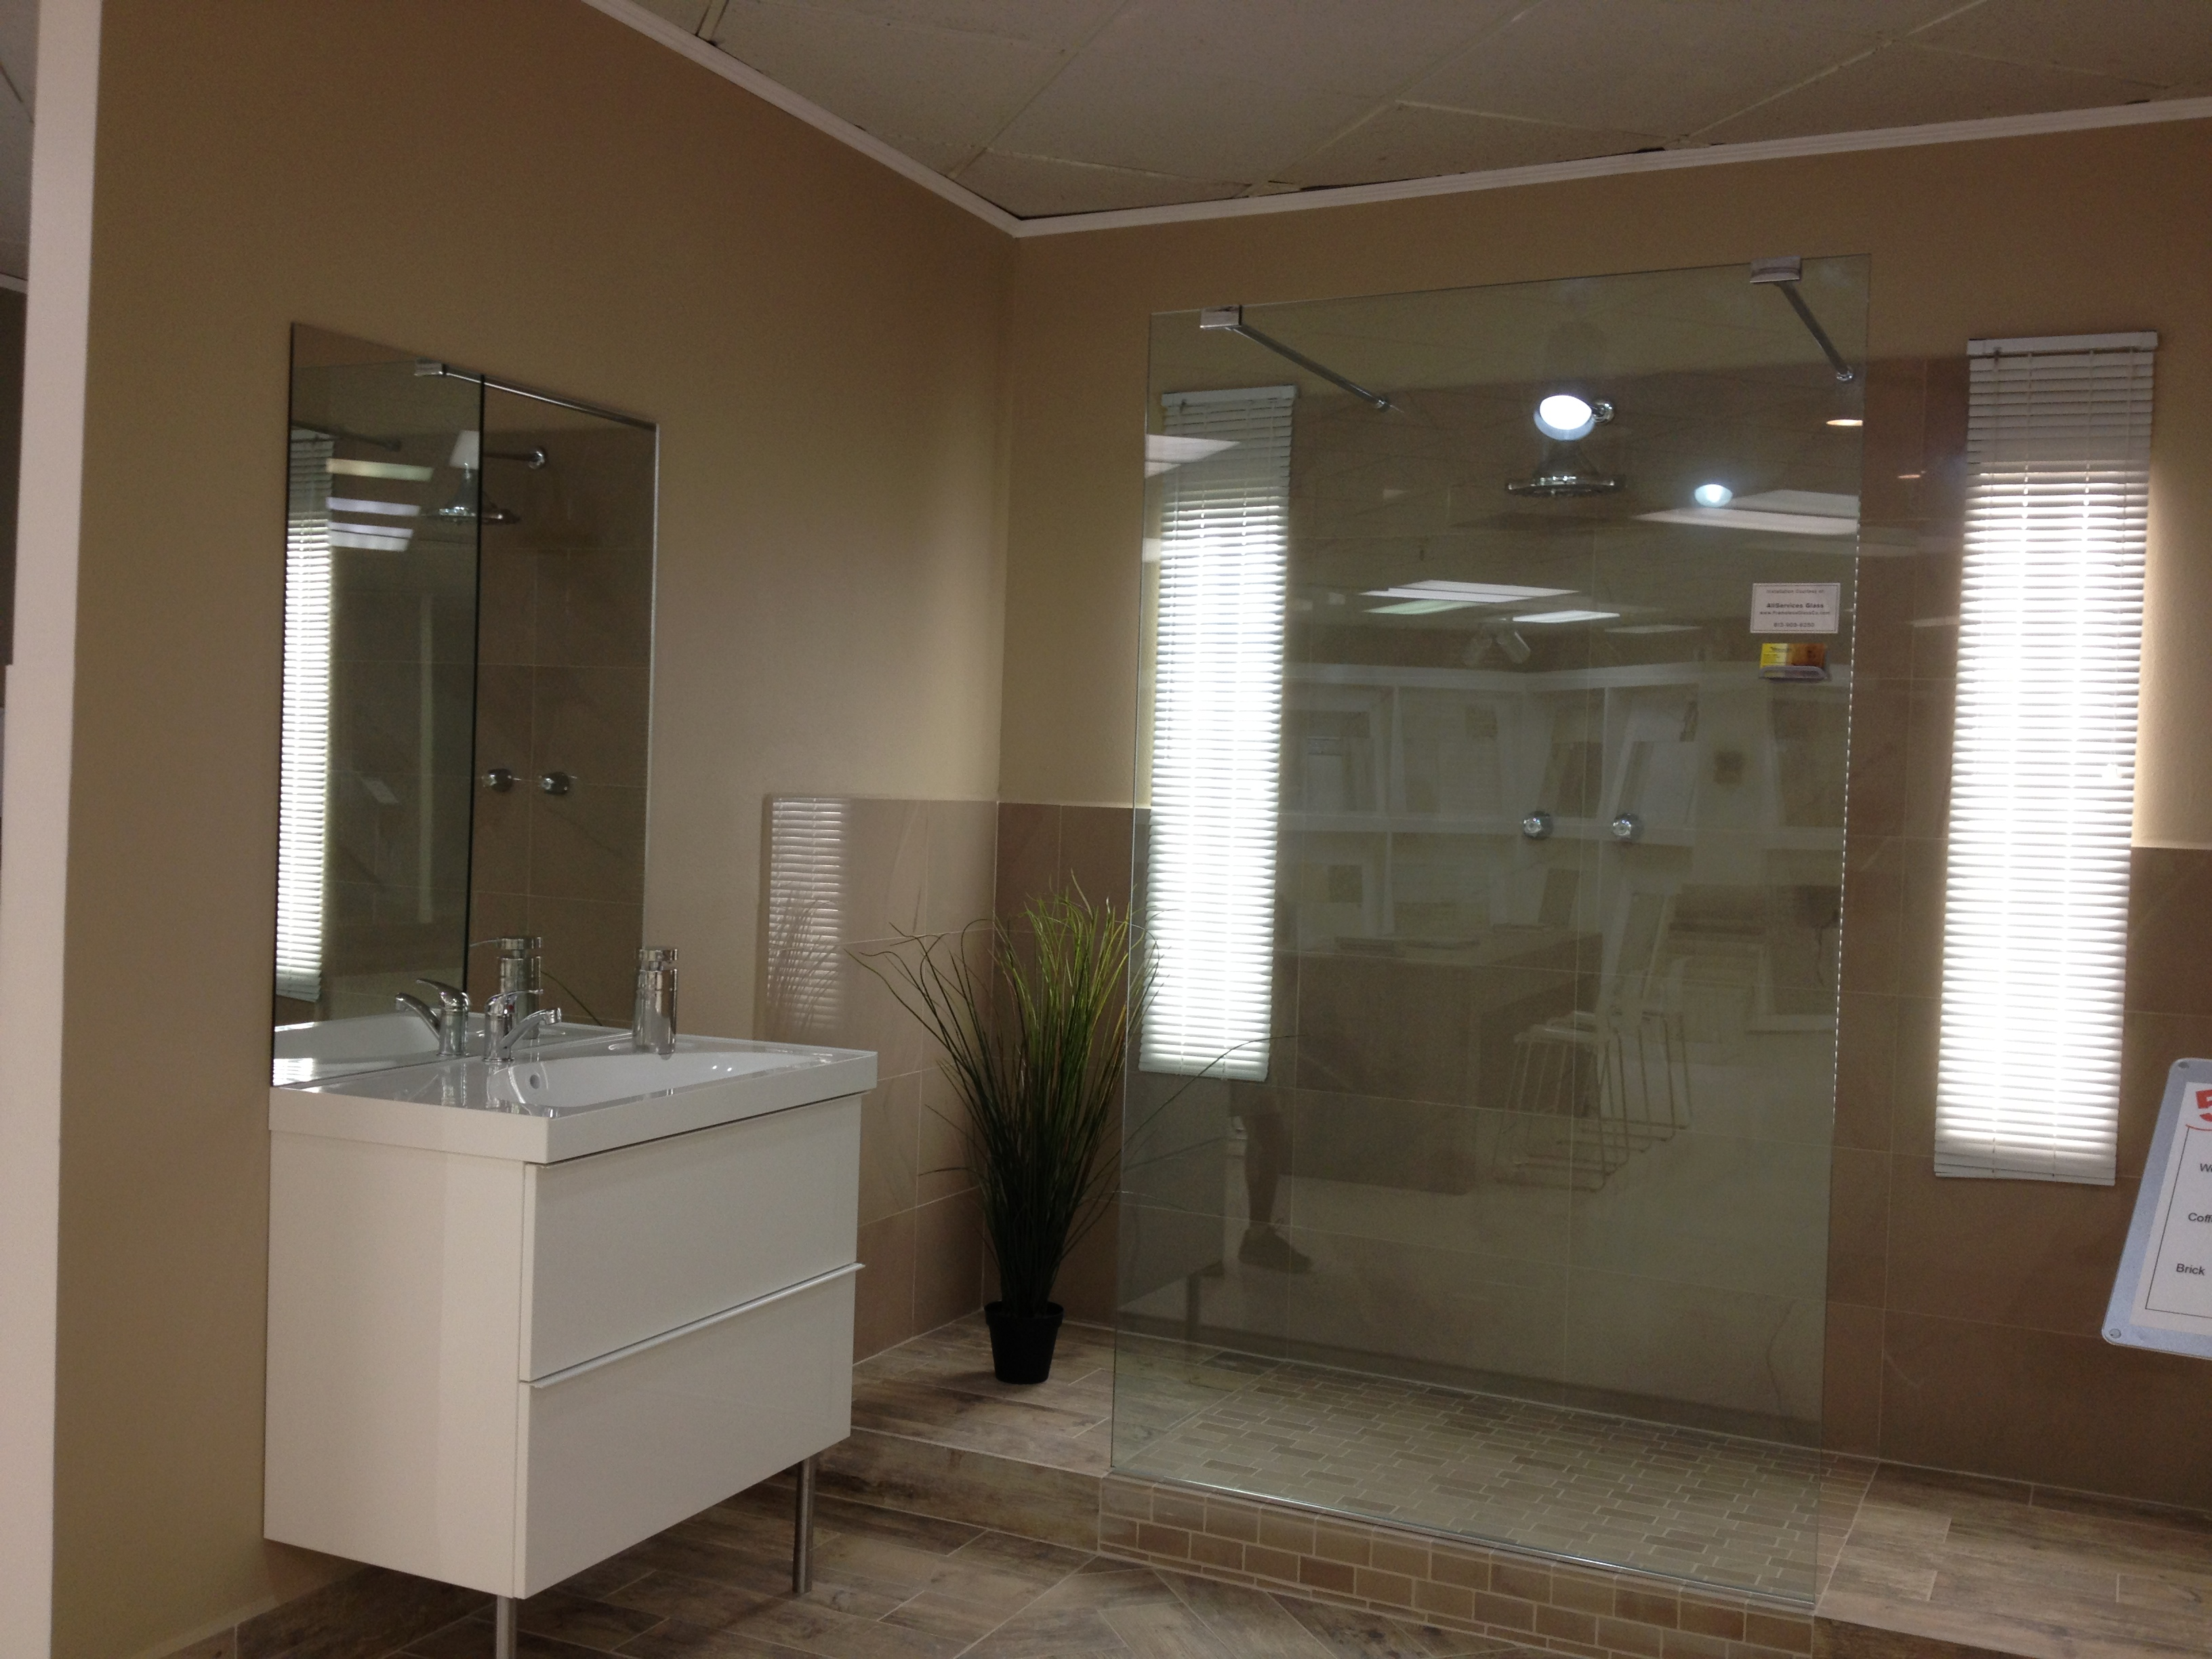 Bathroom partition with support bars allservices - Bathroom glass partition designs ...